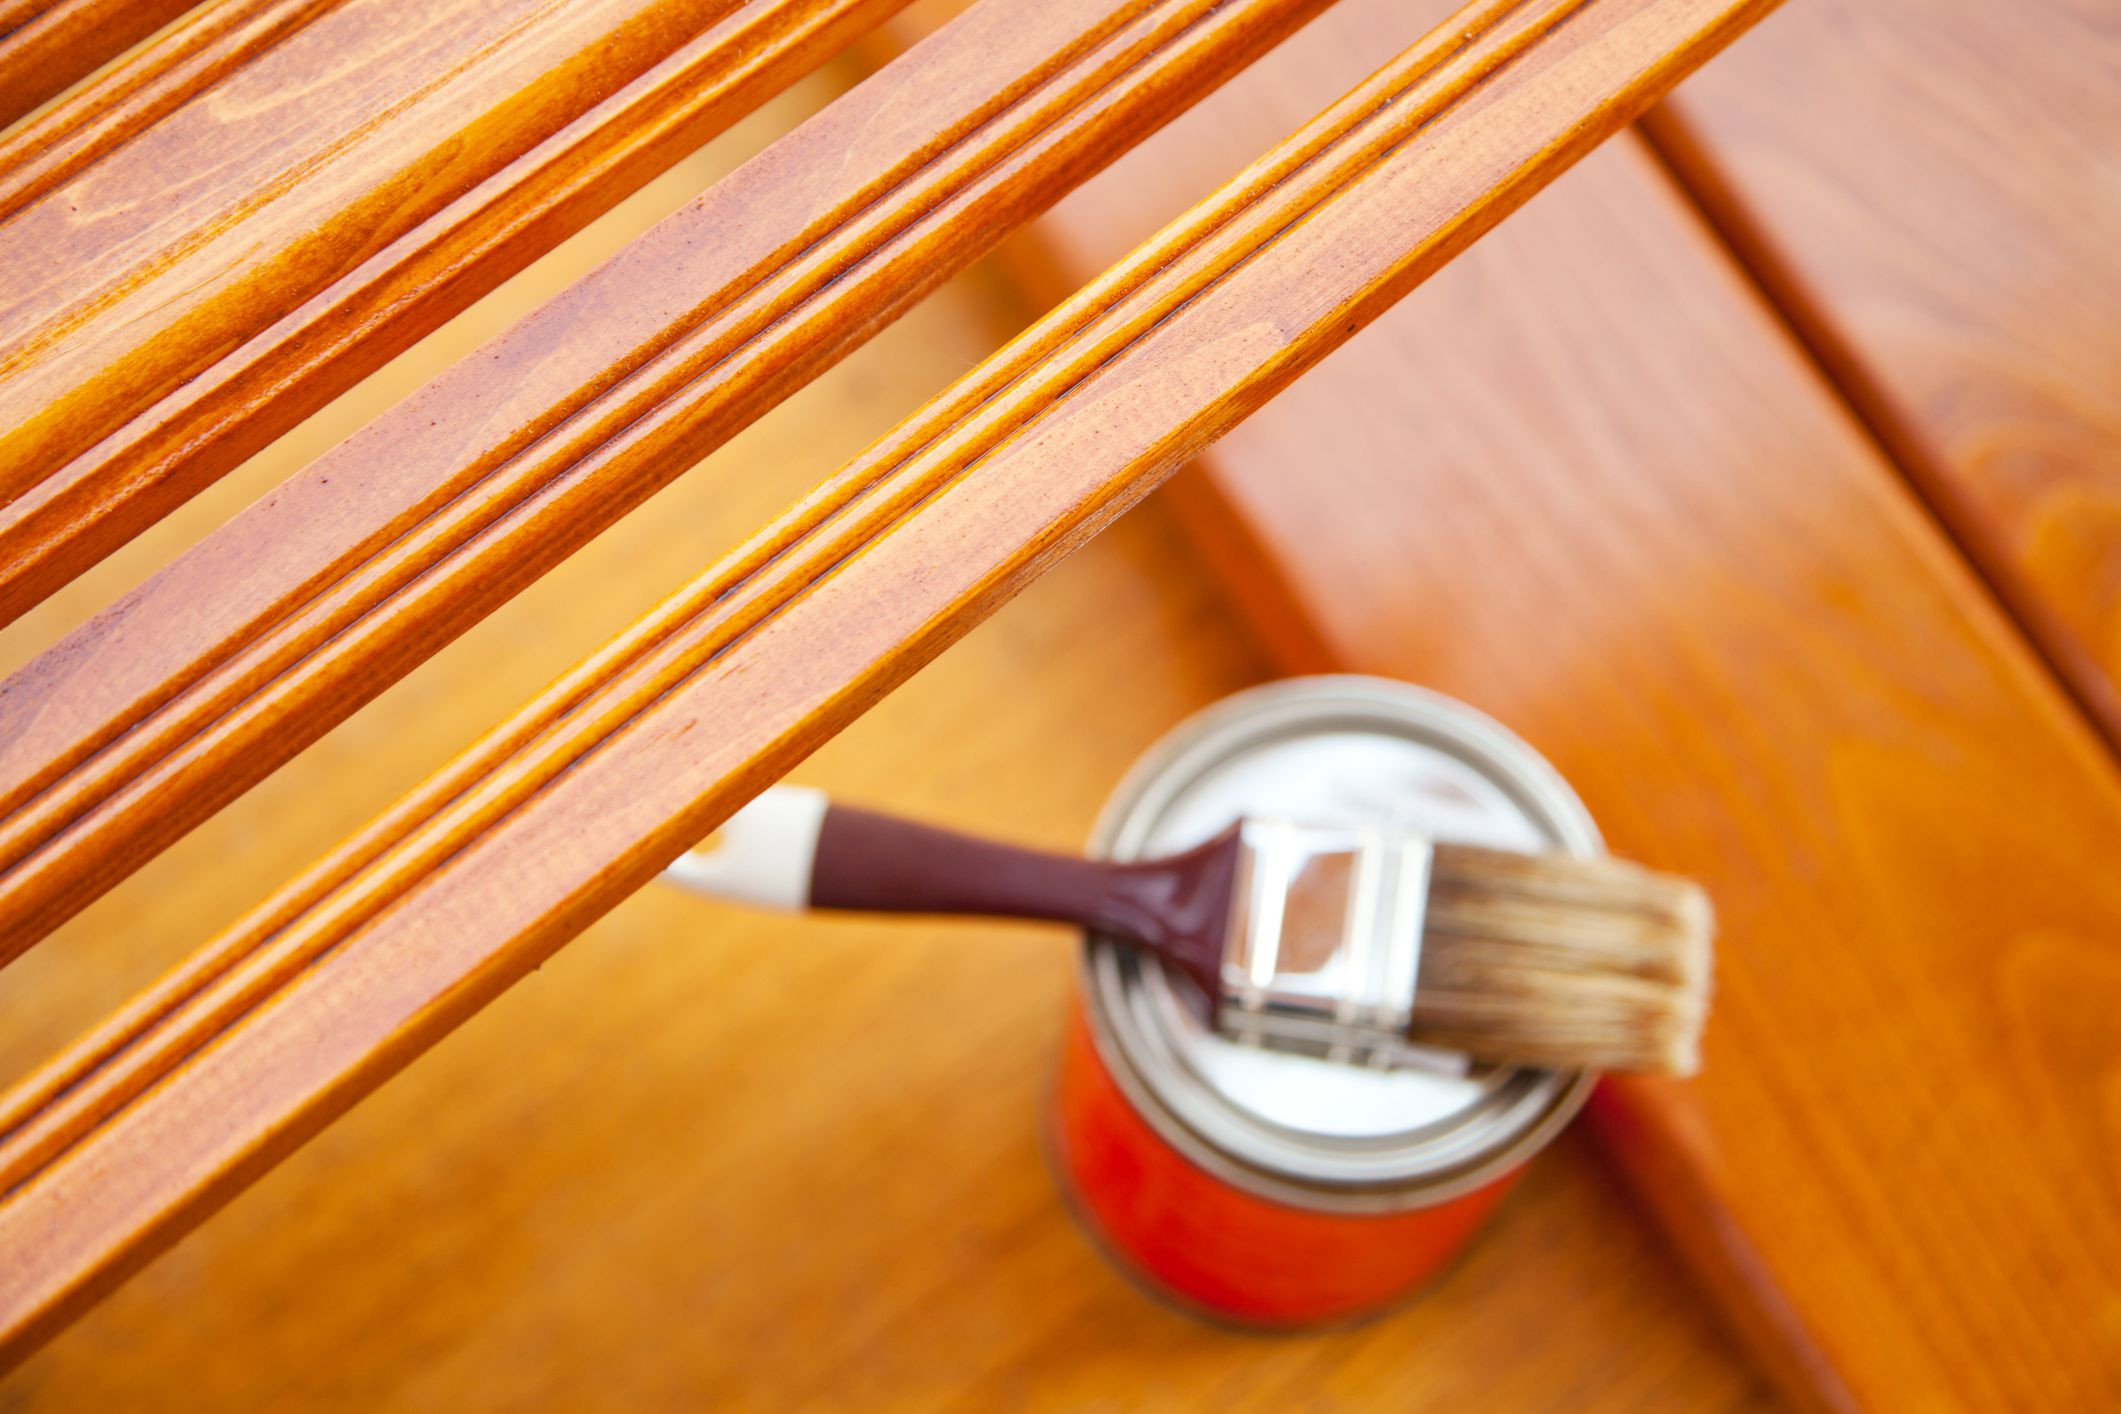 shoe molding for hardwood floors of how to install shoe molding or quarter round molding intended for stained shoe molding and trim 184350915 57a8b8853df78cf459213fbc